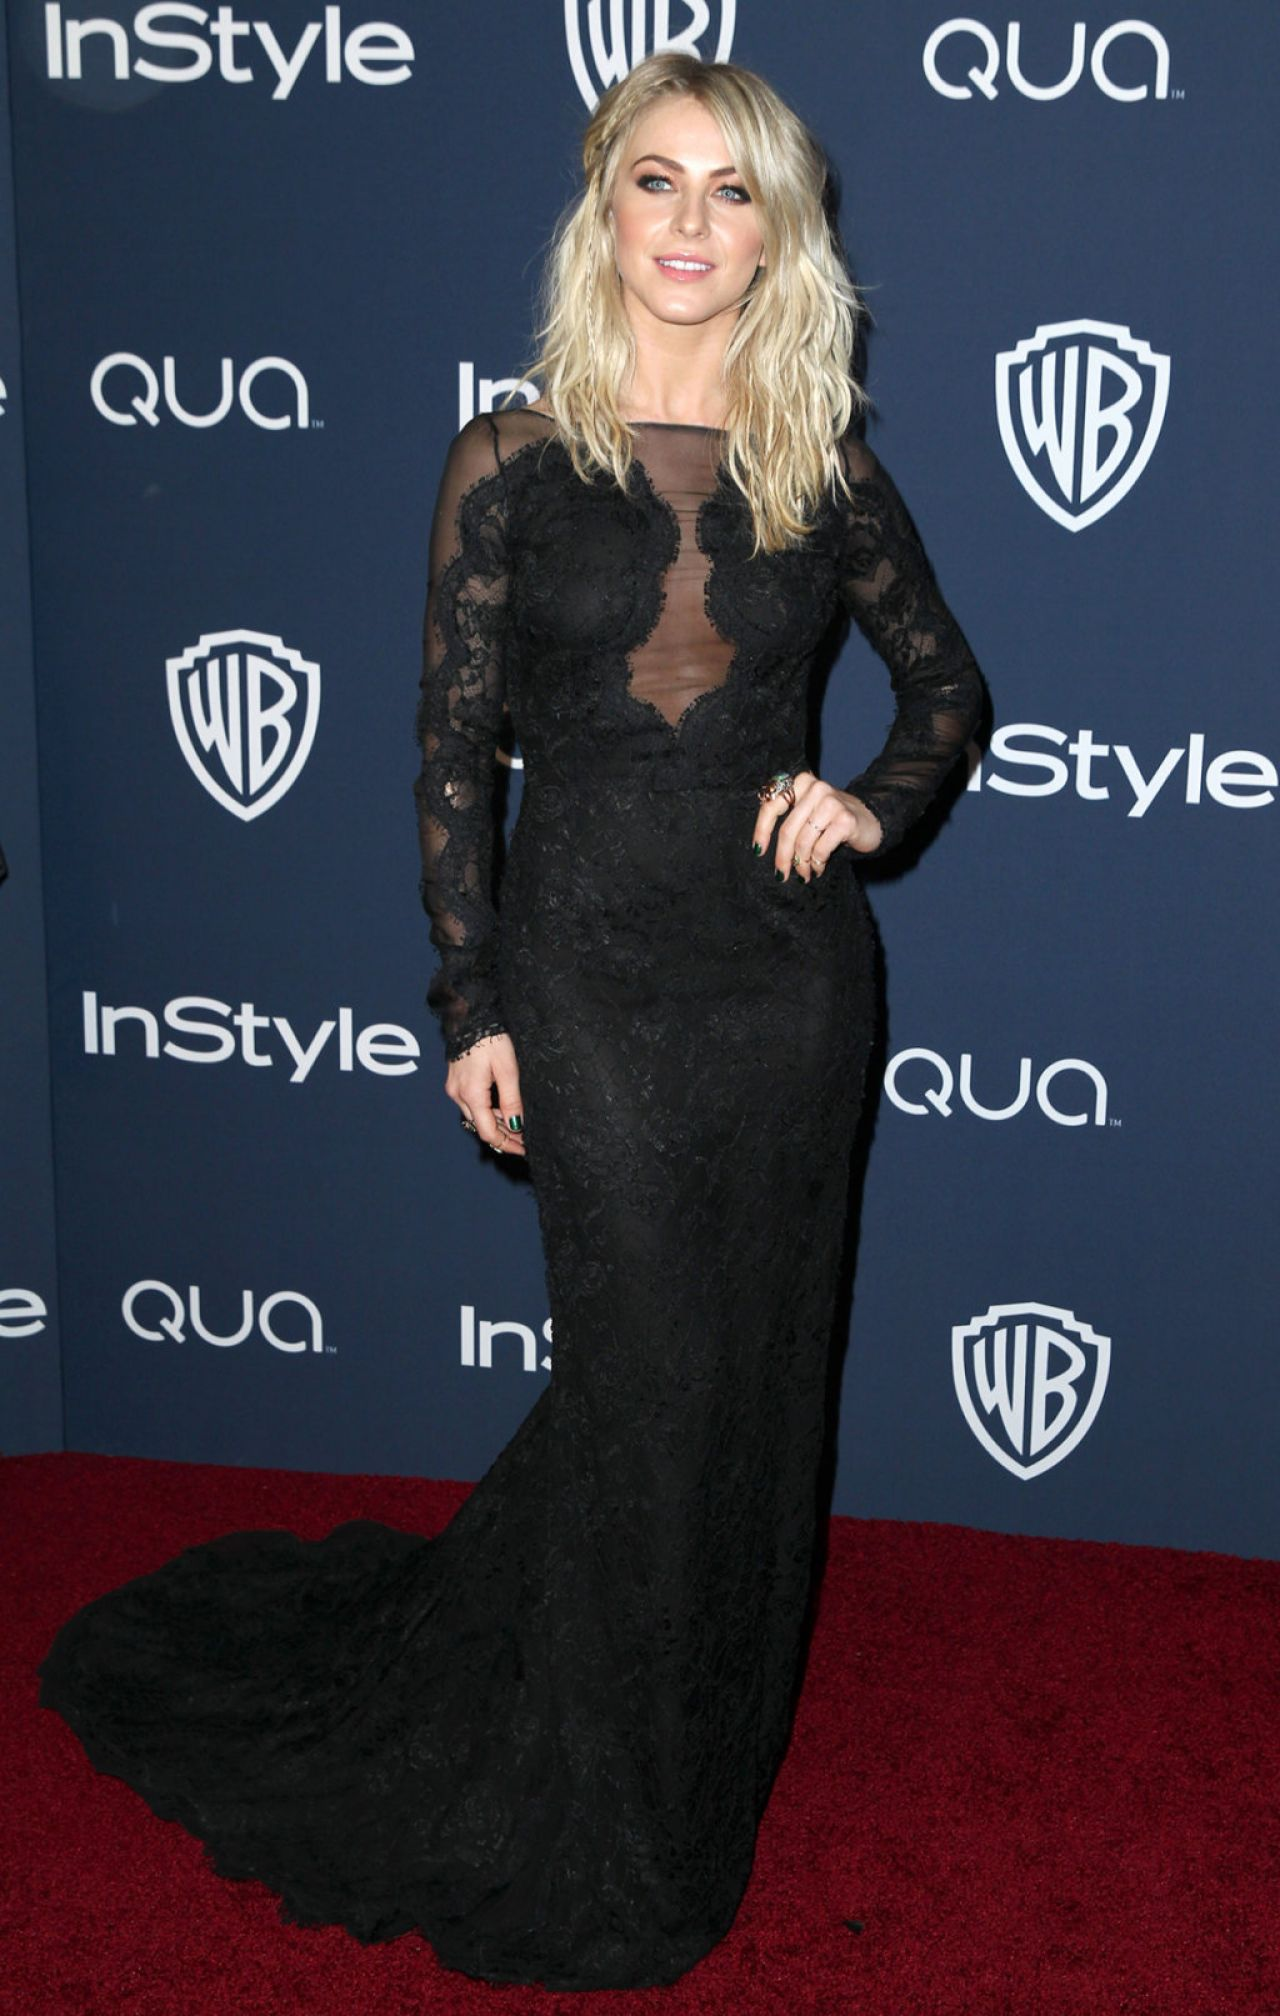 Julianne Hough - InStyle & Warner Bros. Golden Globes After Party - January 2014